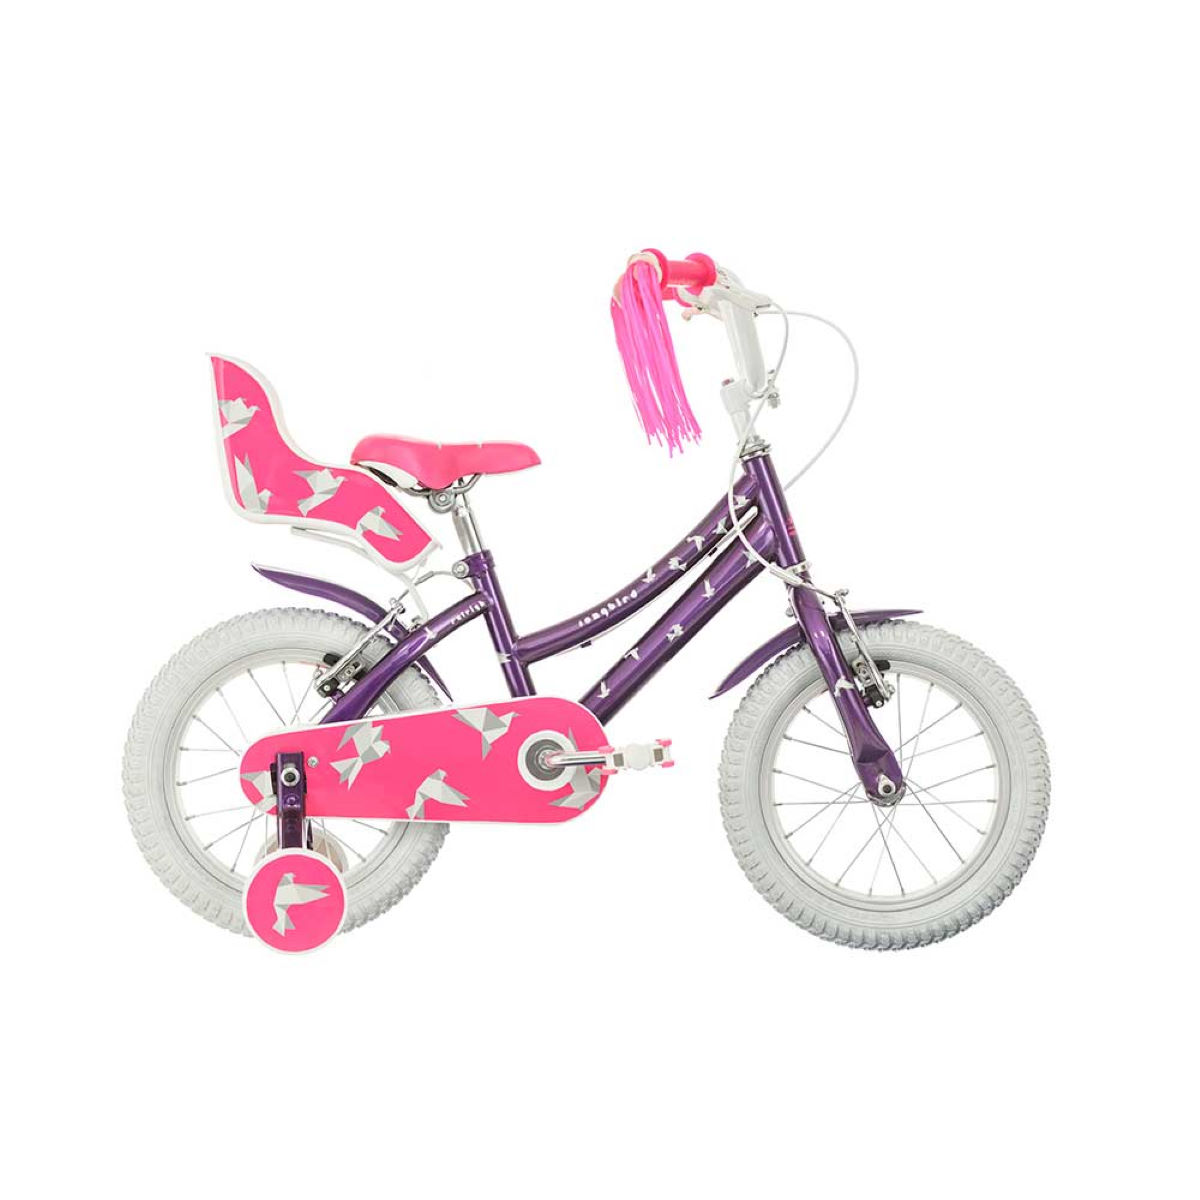 Vélo Enfant Raleigh Songbird 14 (2017) - 14'' Wheel Stock Bike Mauve